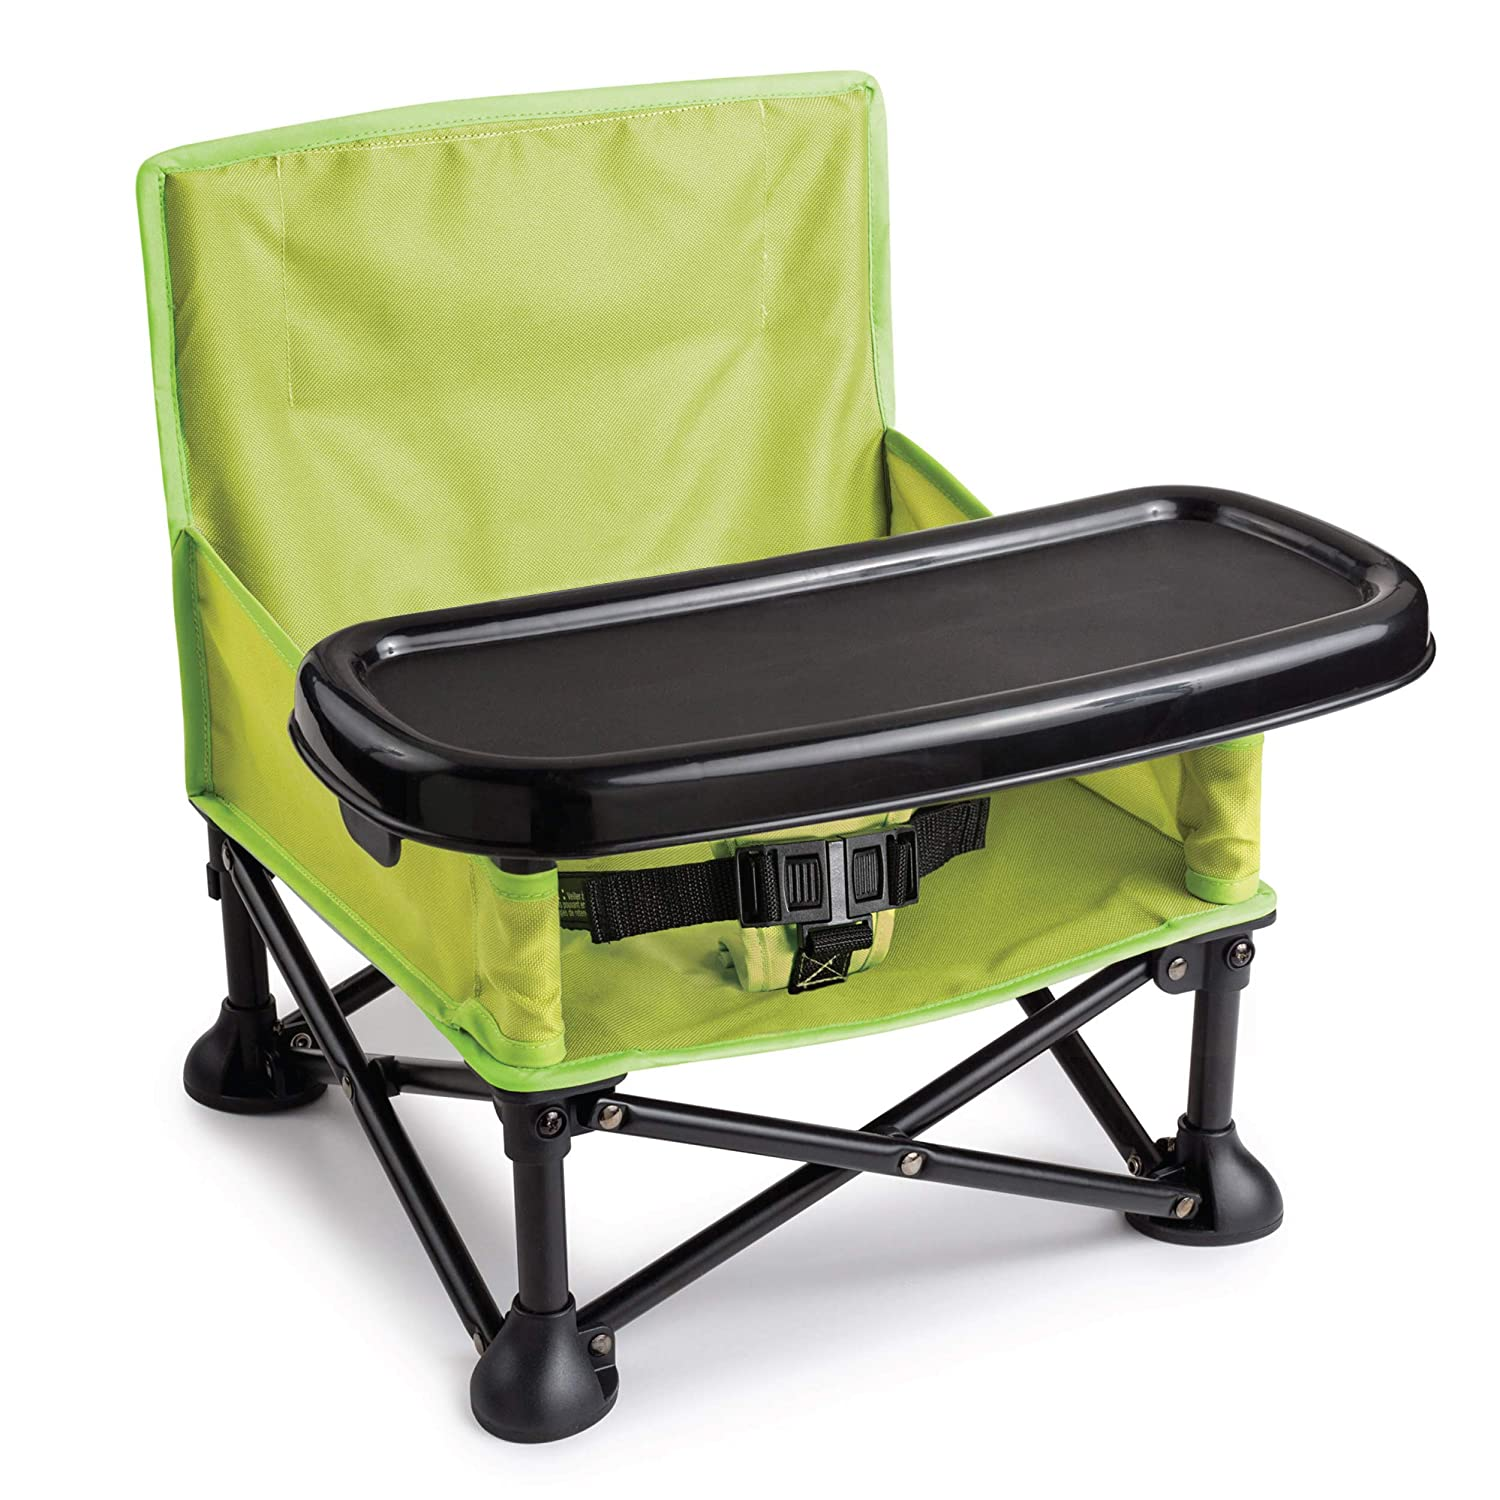 Summer Infant Pop 'N Sit Portable Seat for Max 84% OFF Chair Max 83% OFF Indoor Booster